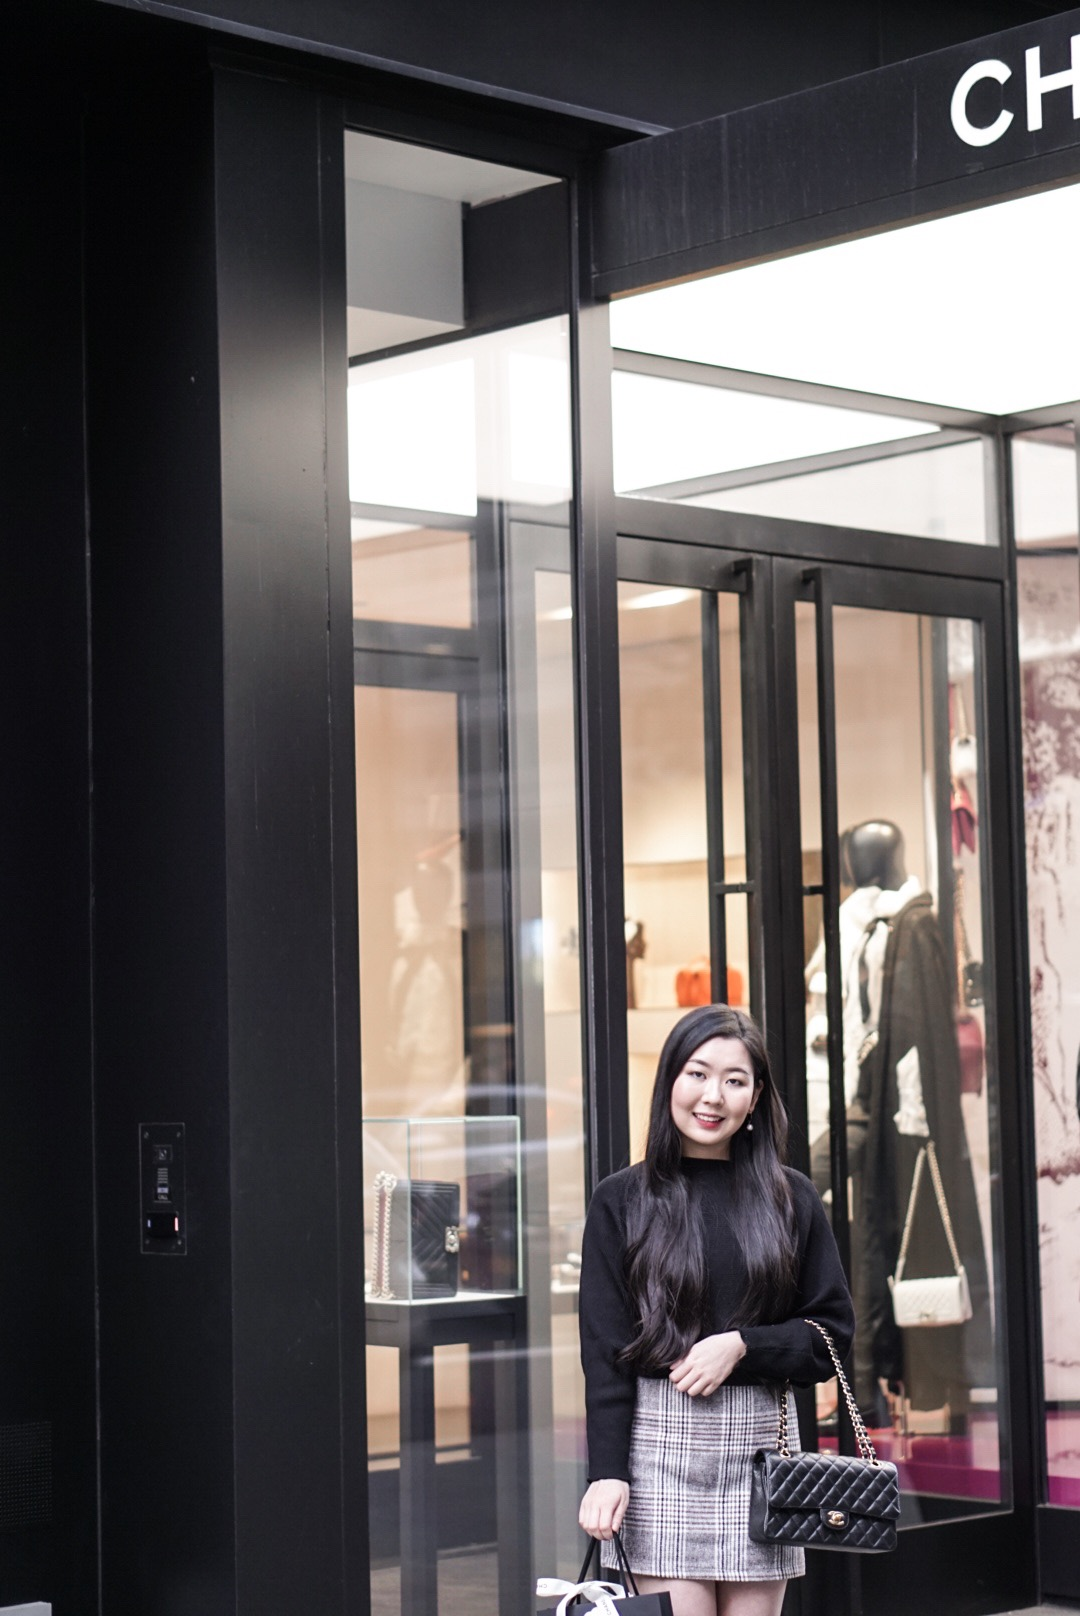 Outside the 15 E 57th St Chanel Boutique in New York City